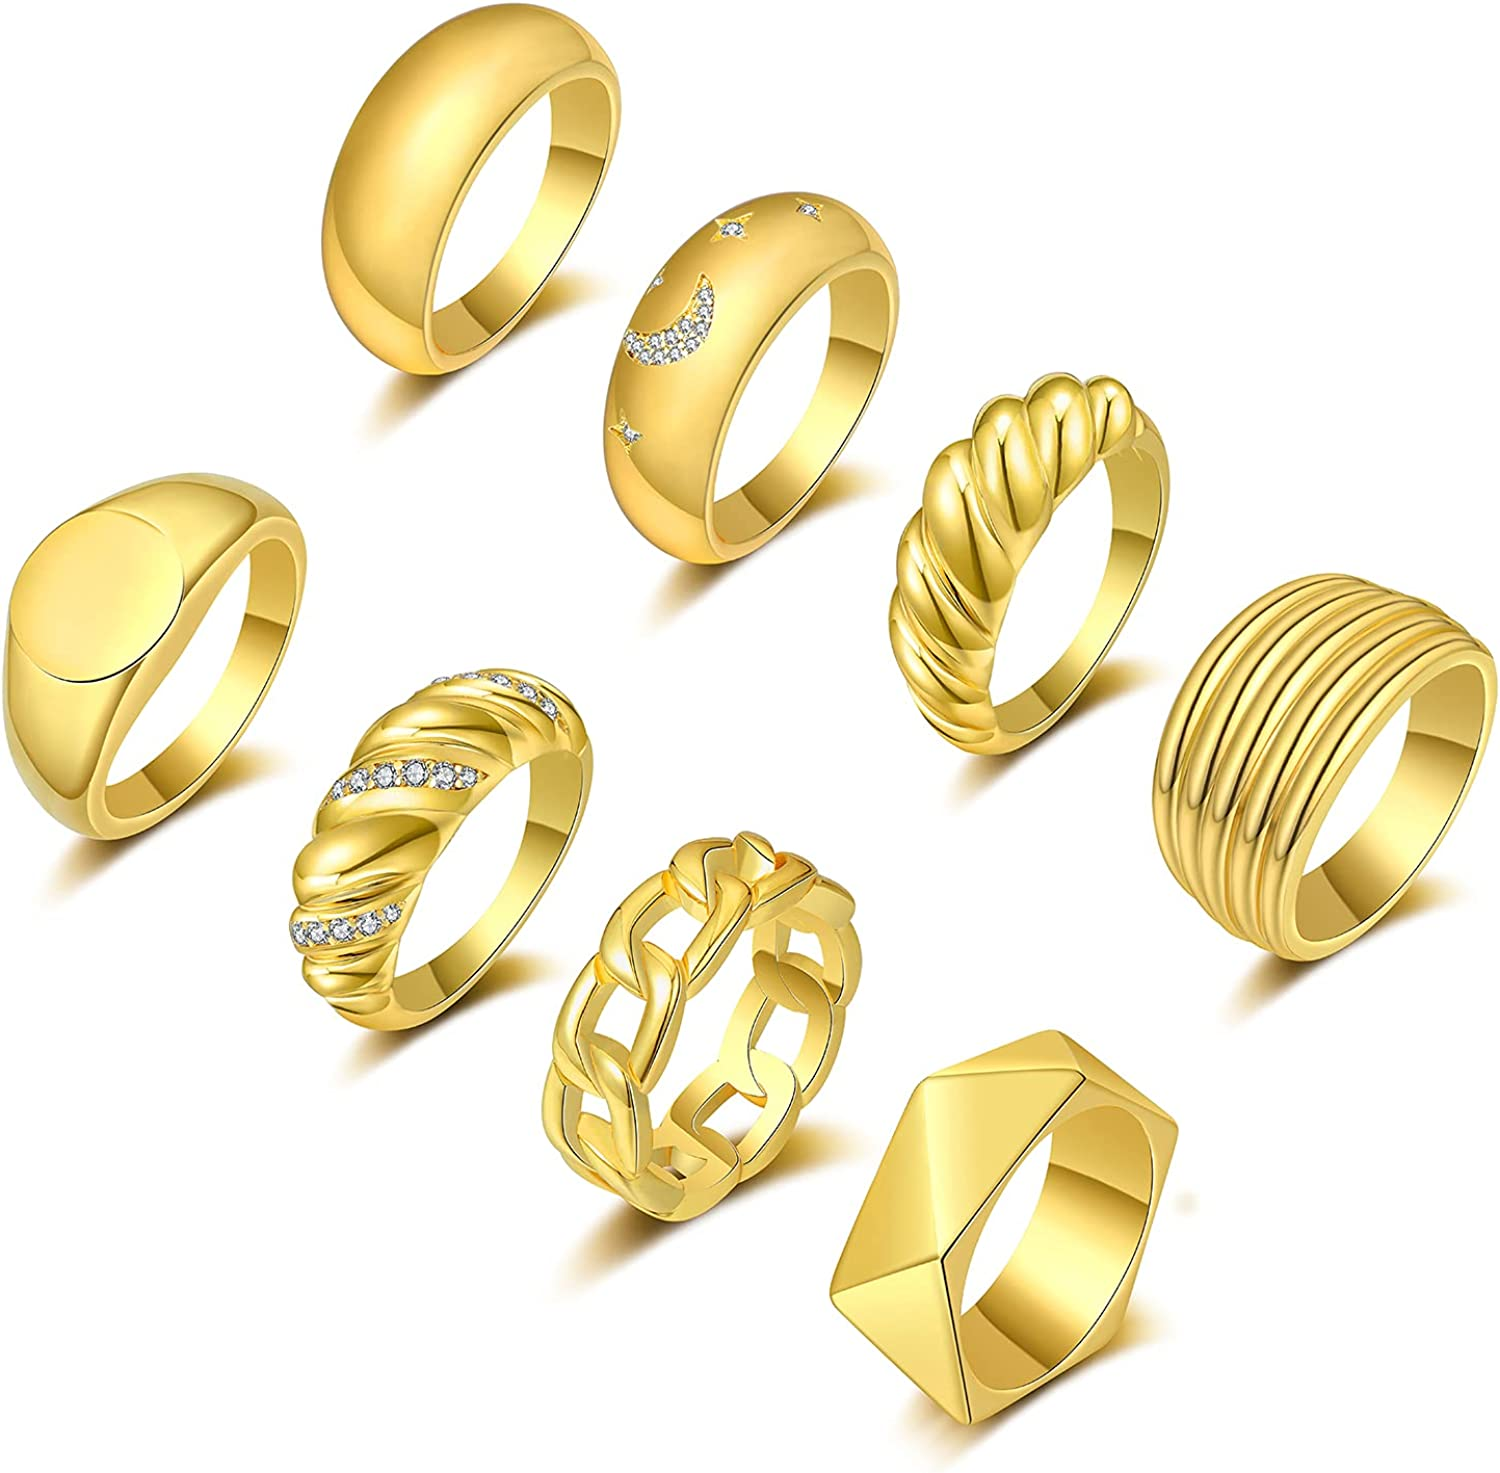 FUNEIA 8Pcs 18K Gold Plated Chunky Rings for Women Cubic Zirconia Moon Star Thick Dome Signet Rings Braided Twisted Gold Ring Set Croissant Minimalist Statement Rings Size 5-9